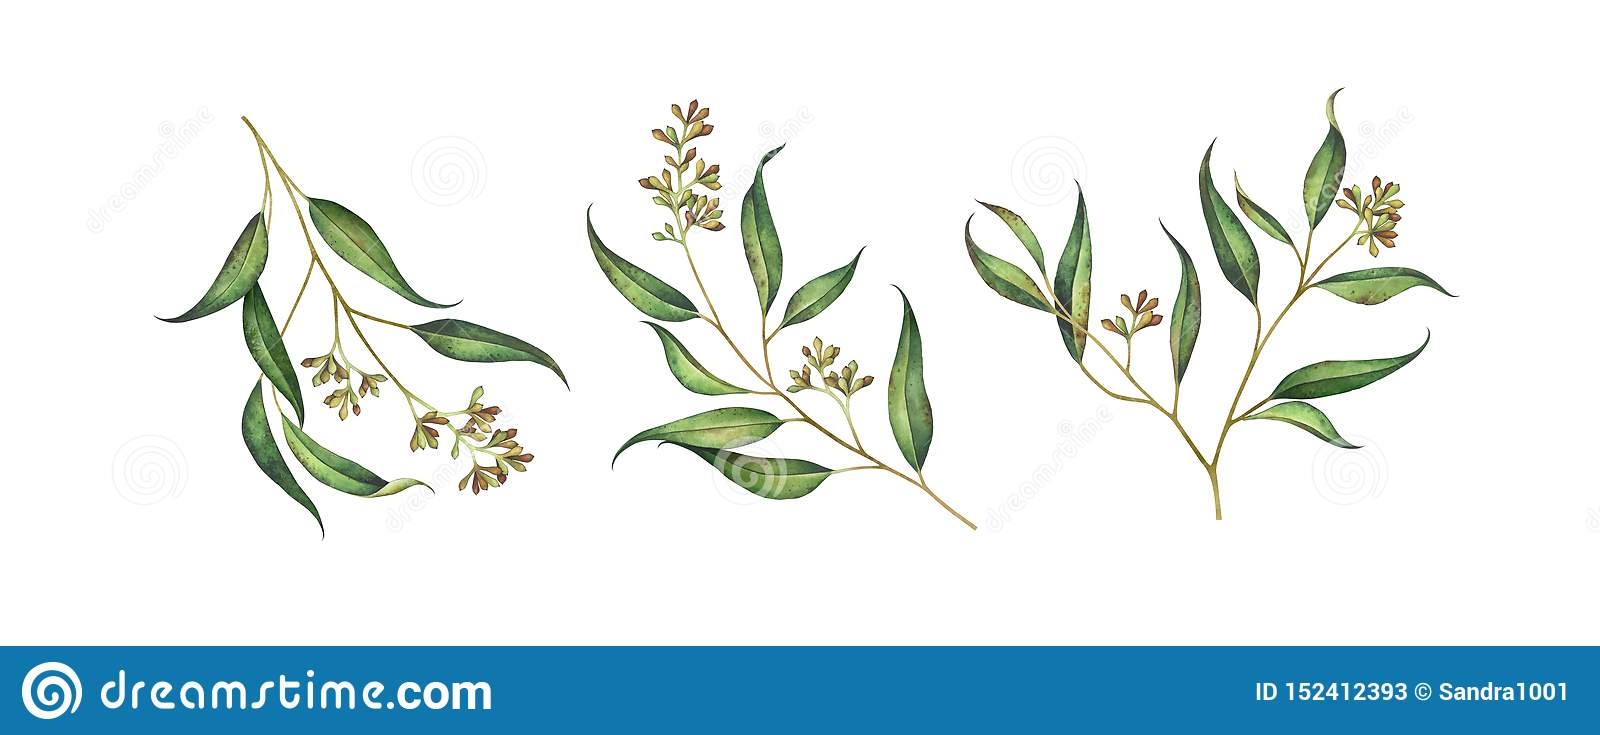 Set of seeded eucalyptus branches isolated on white background.